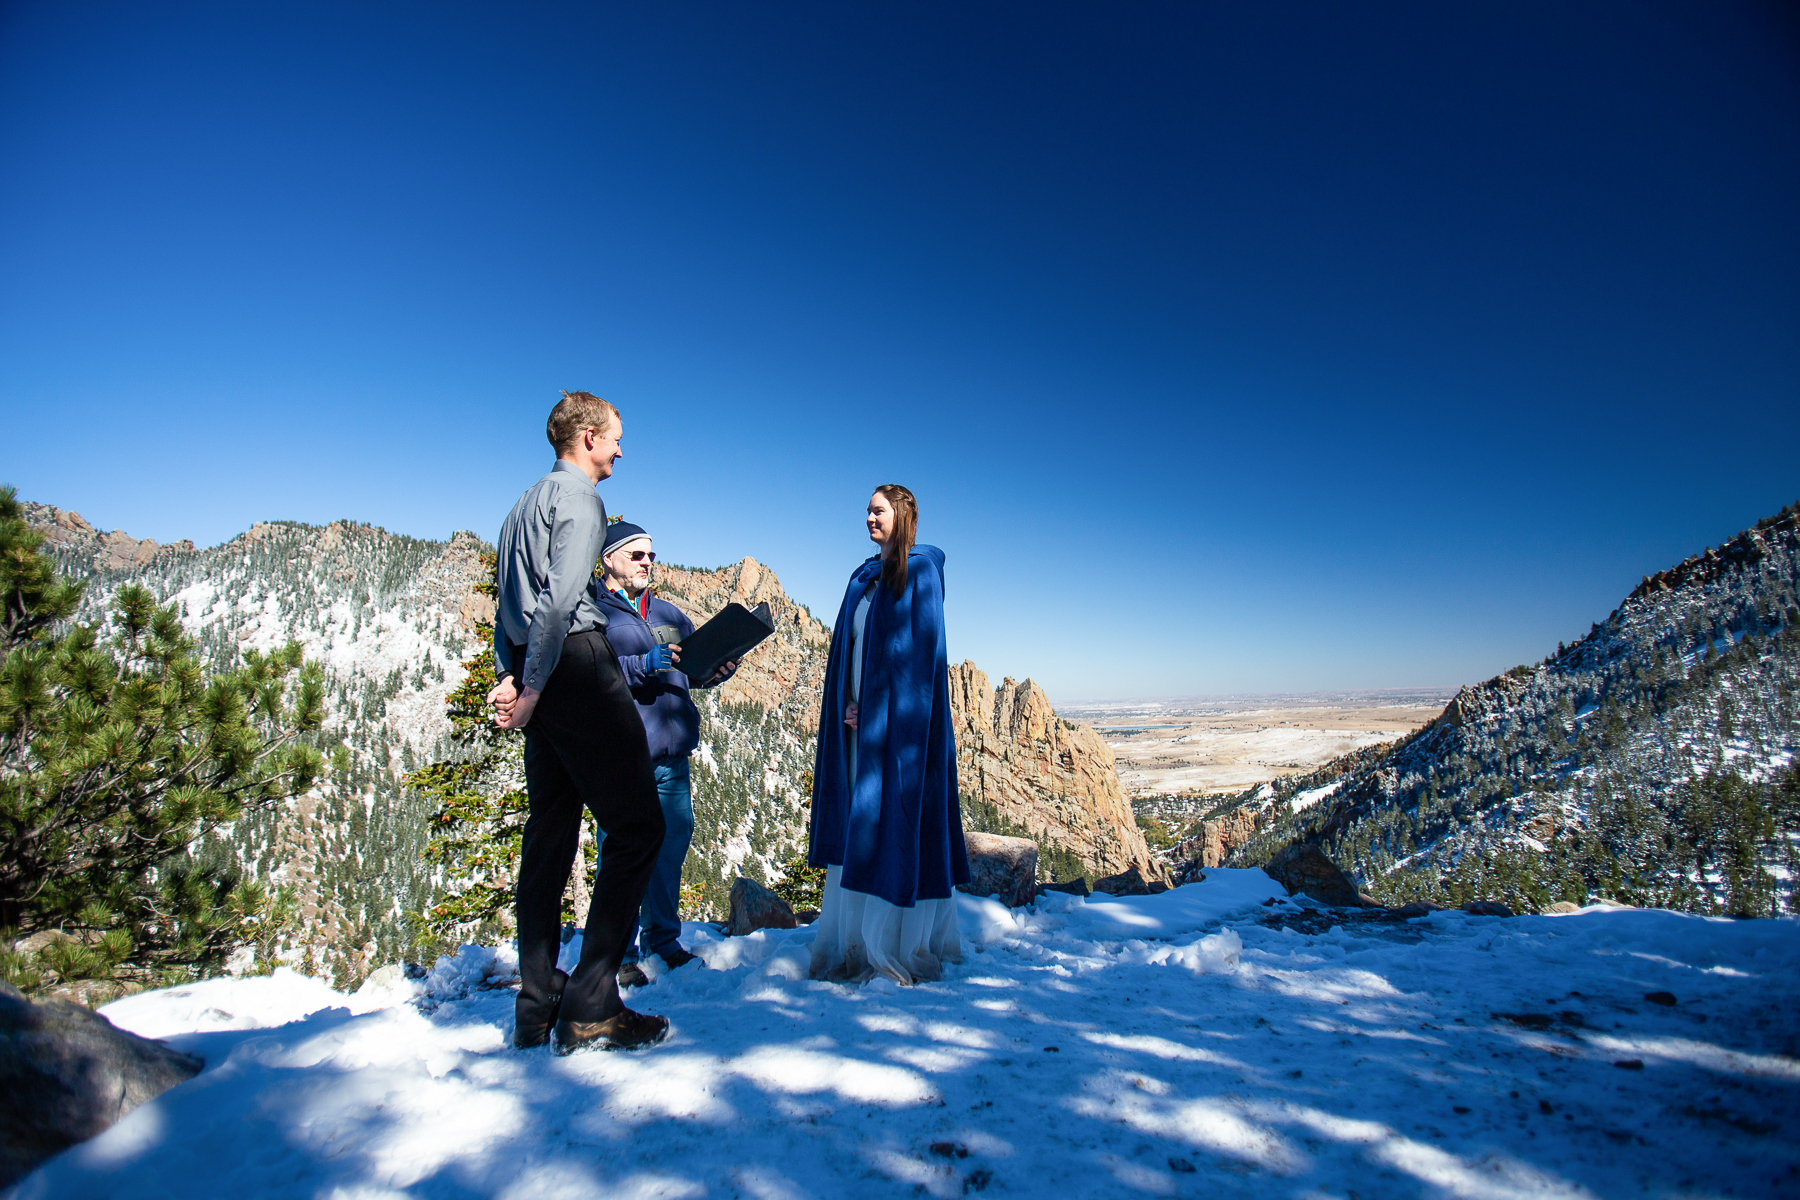 Boulder, CO Winter Elopement Ceremony Image | The divide overlook is known for stunning views of Eldorado Canyon